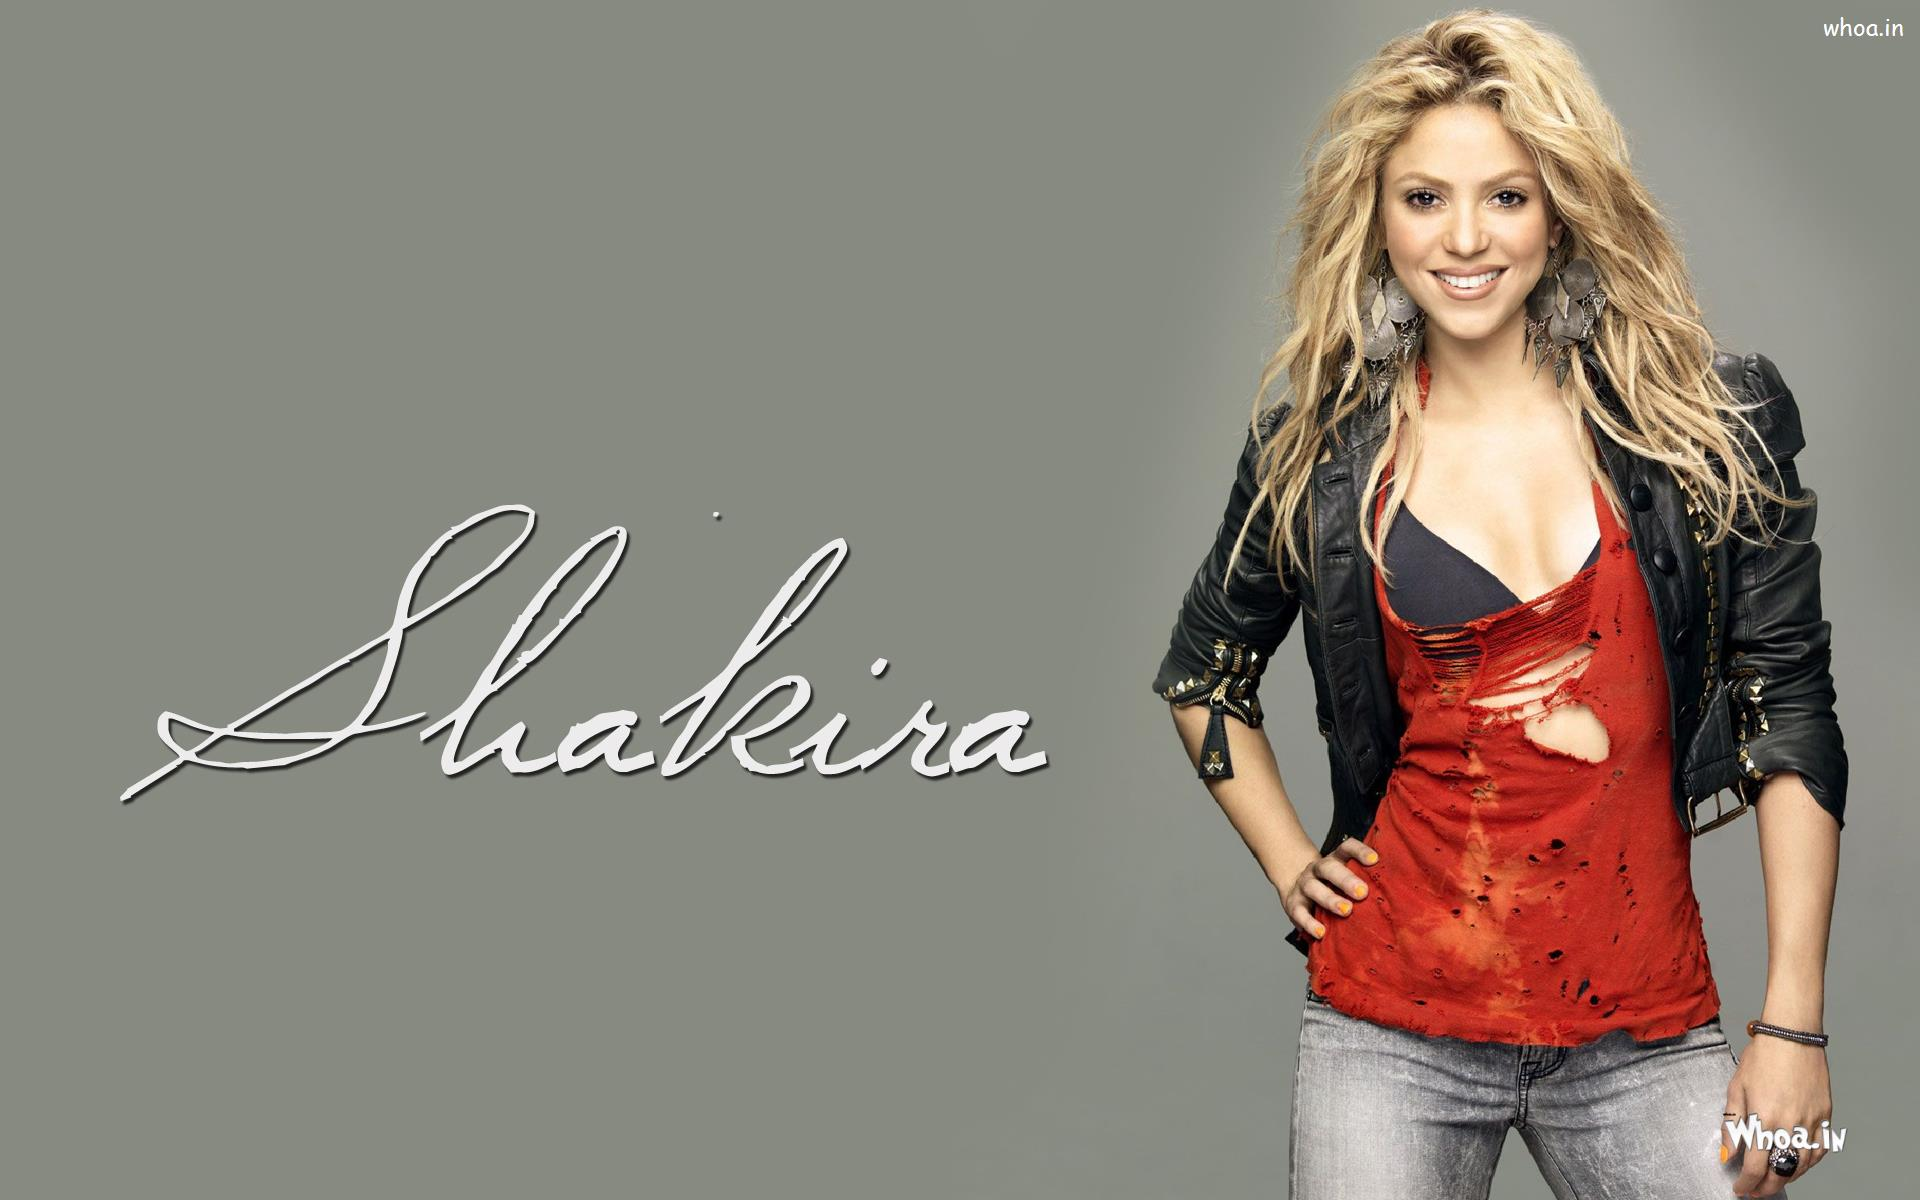 Shakira Wallpaper Wearing Black Jacket And Grey Jeans